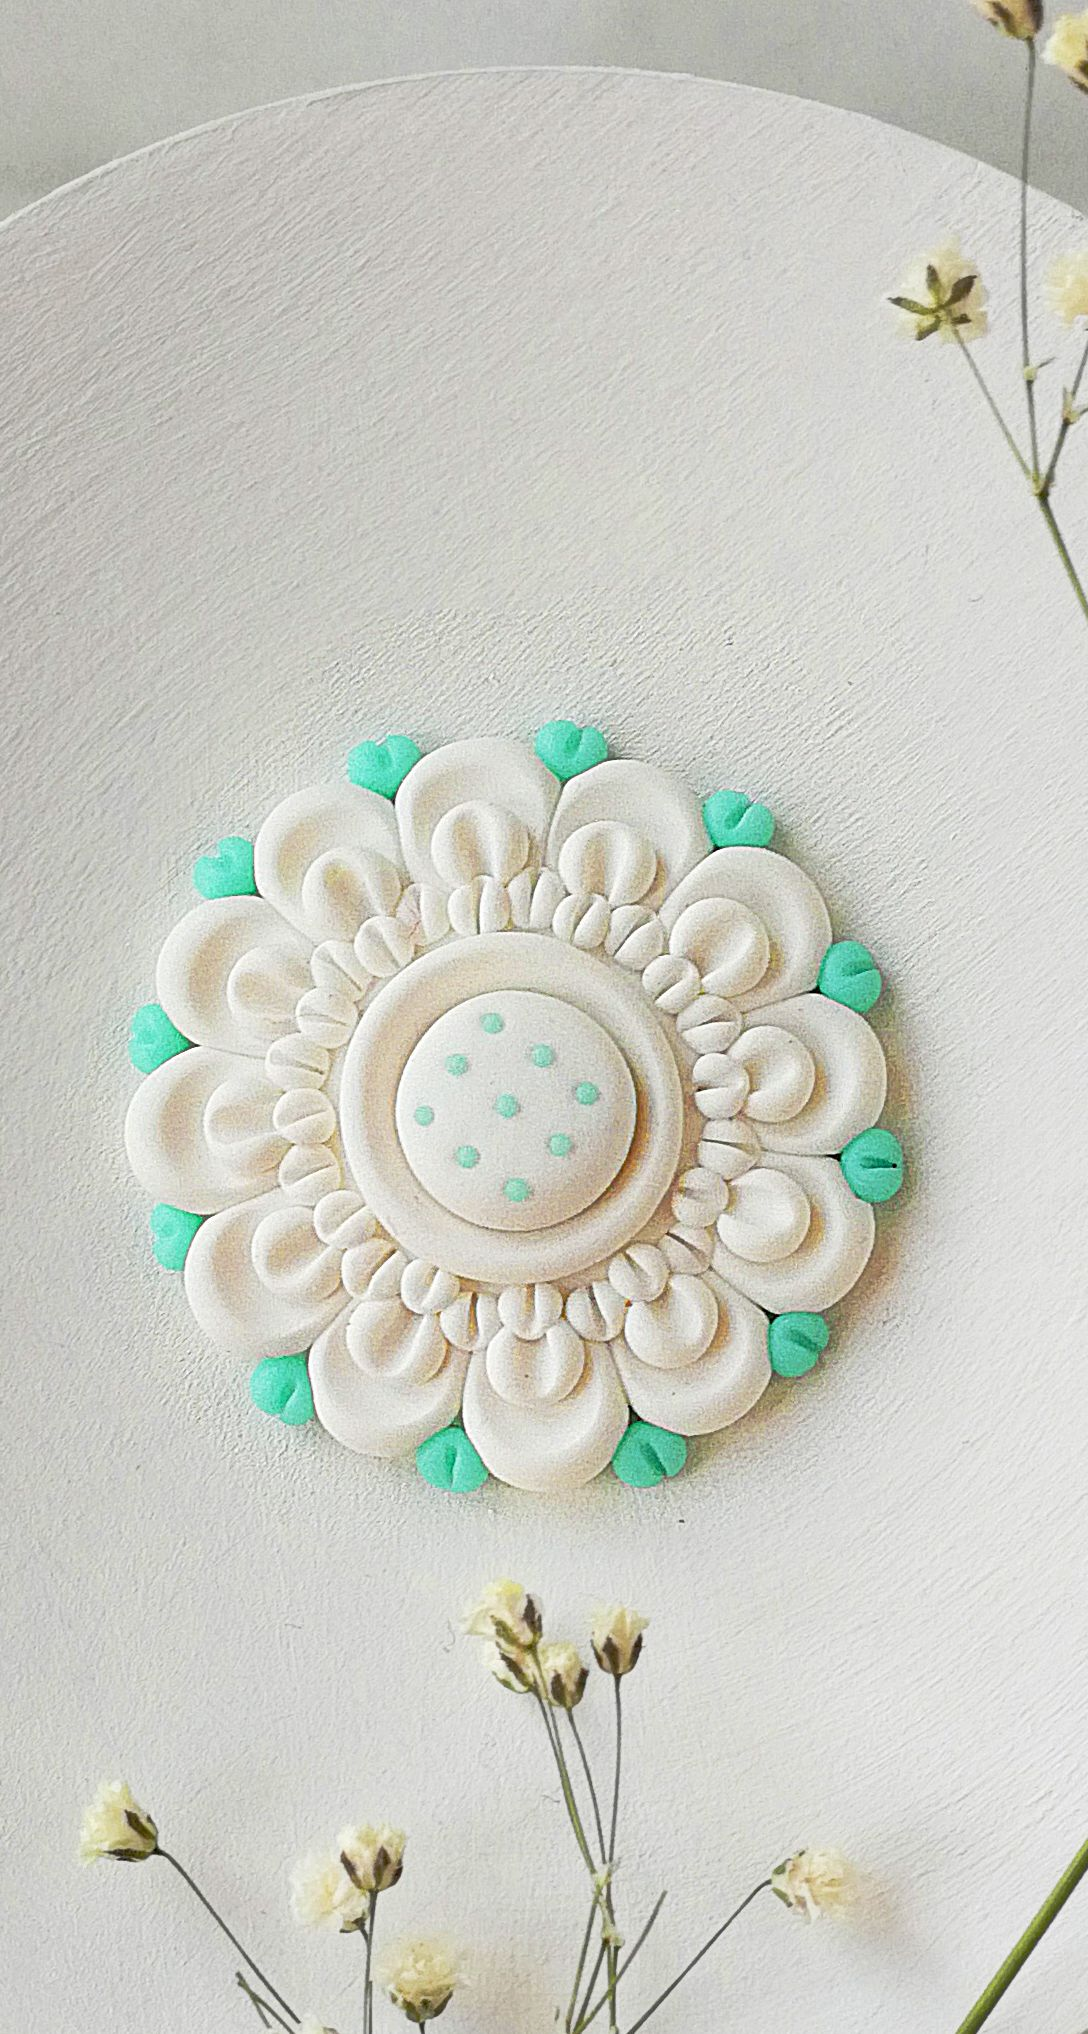 White Flower Brooch Round Pin Floral Clay Jewelry Blooming Flower